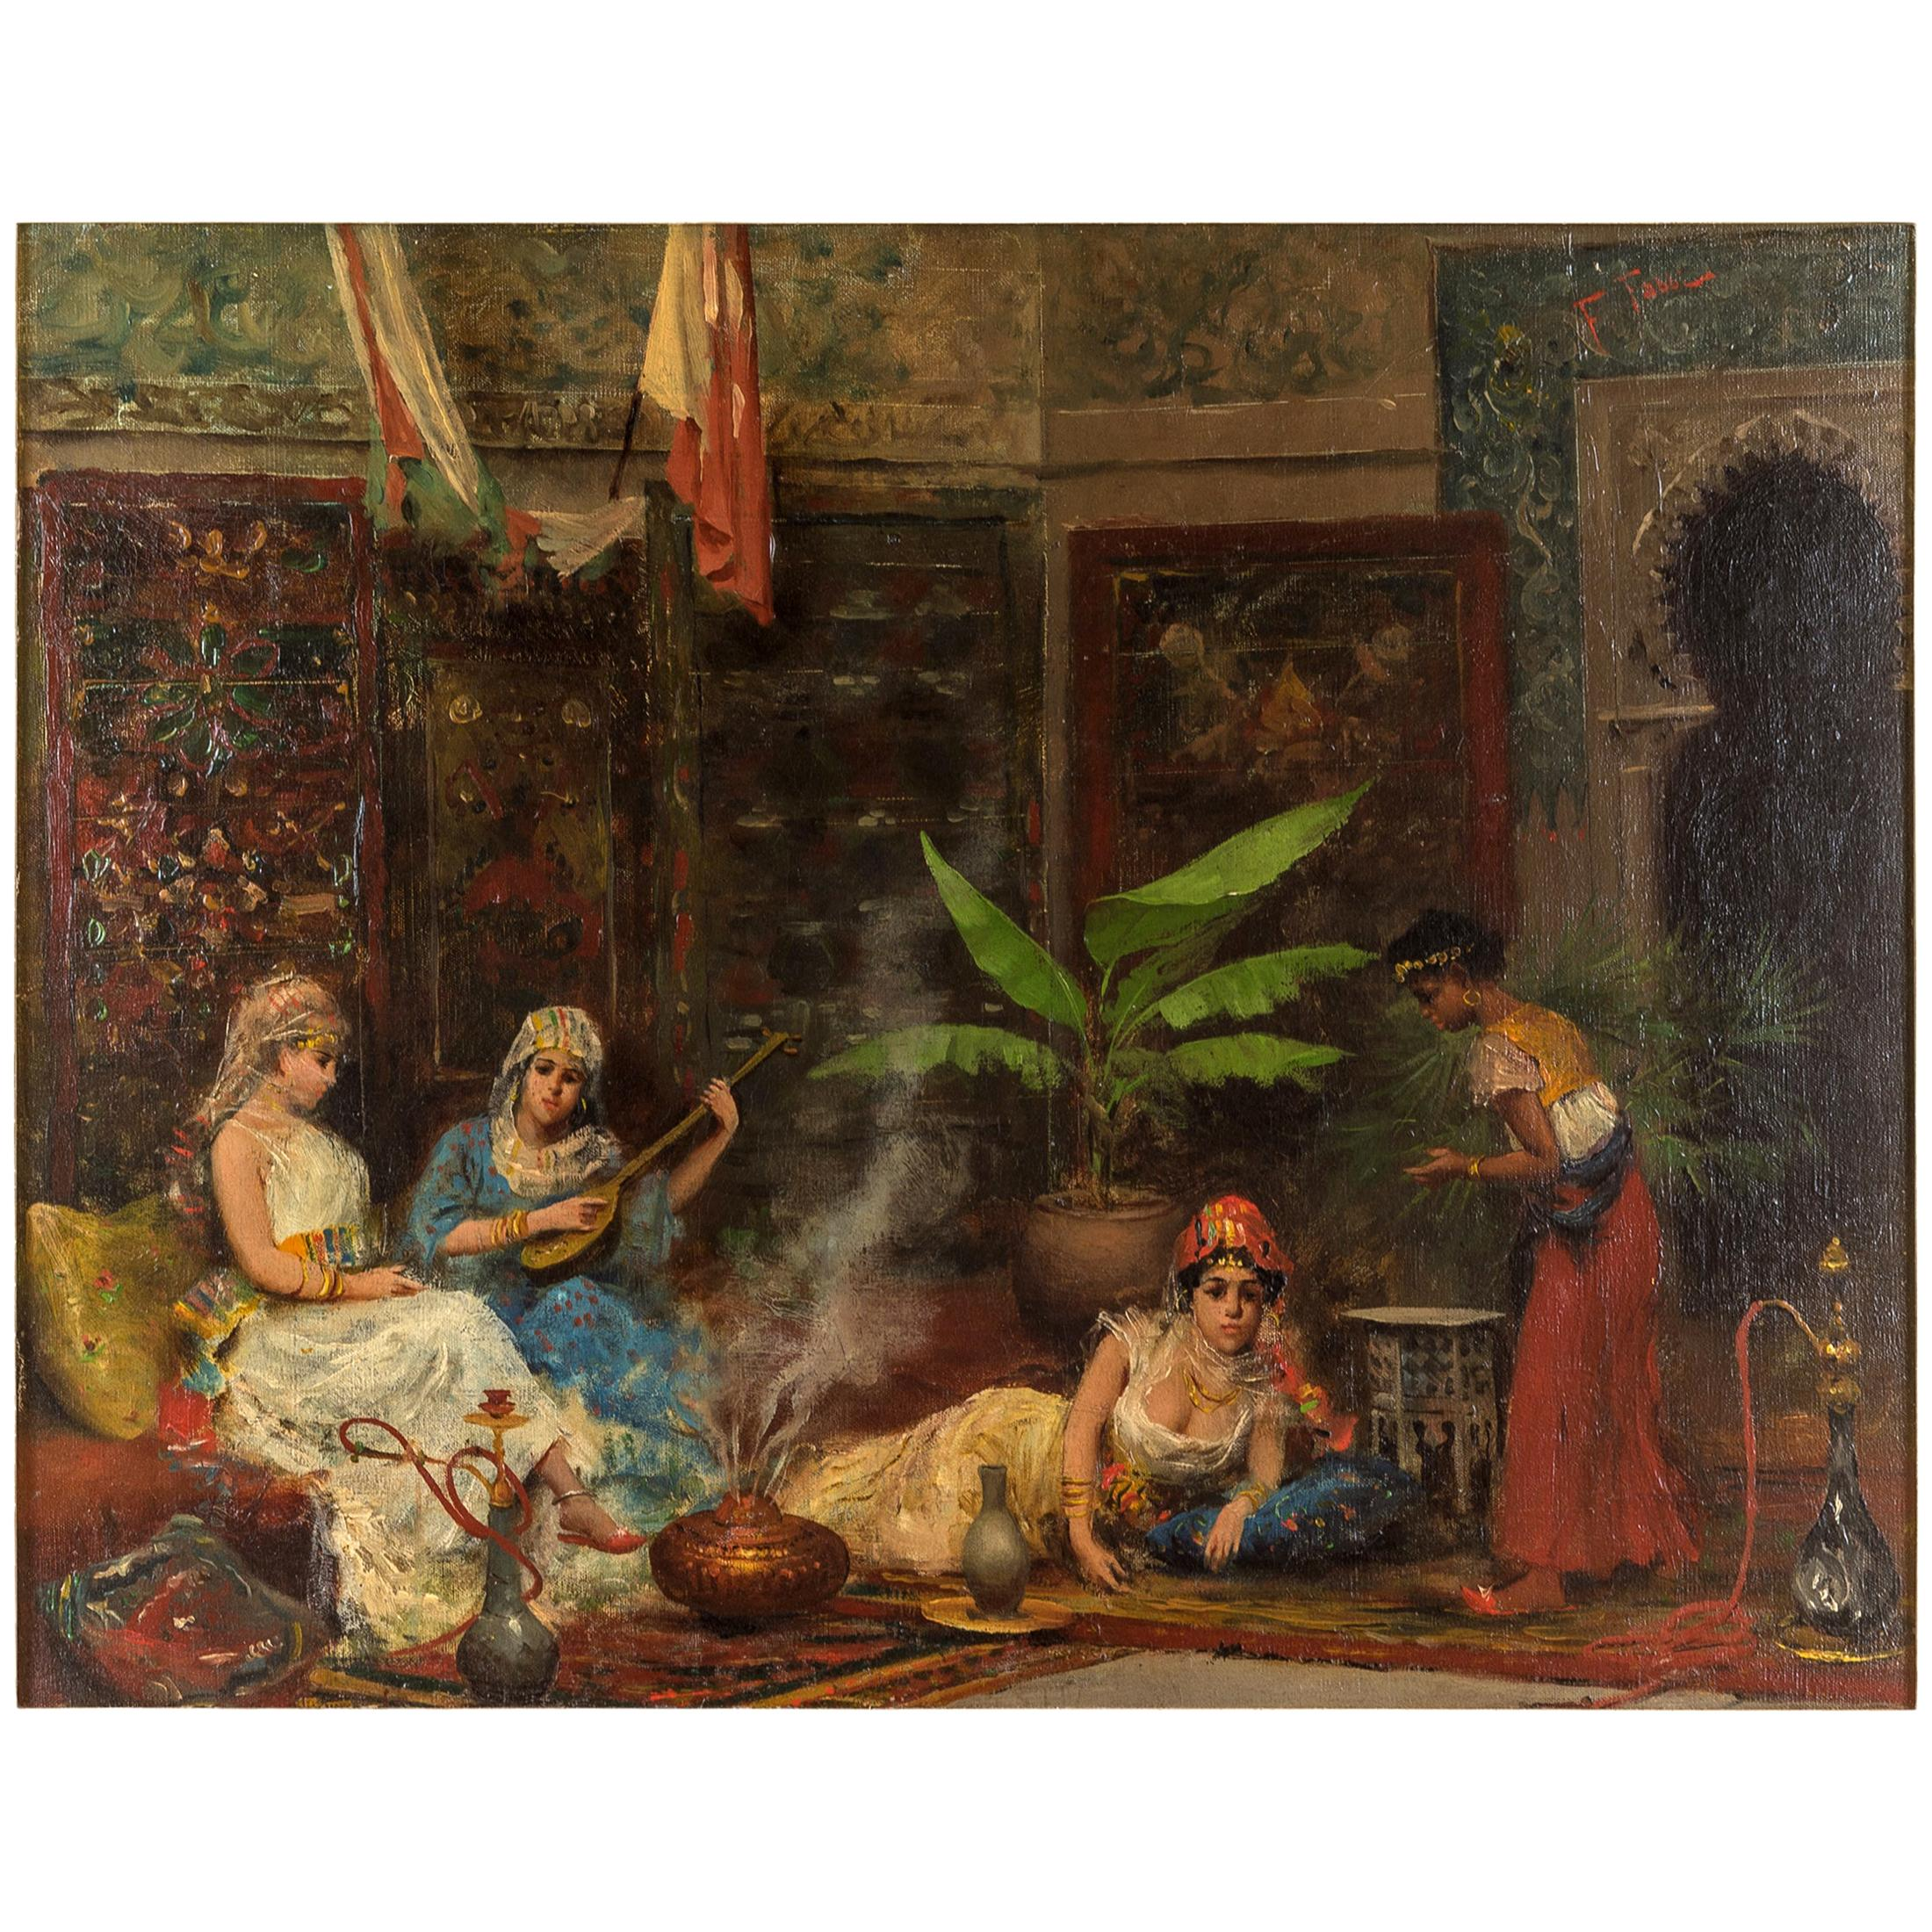 Orientalist Painting Depicting Concubines in the Harem by Fabio Fabbi